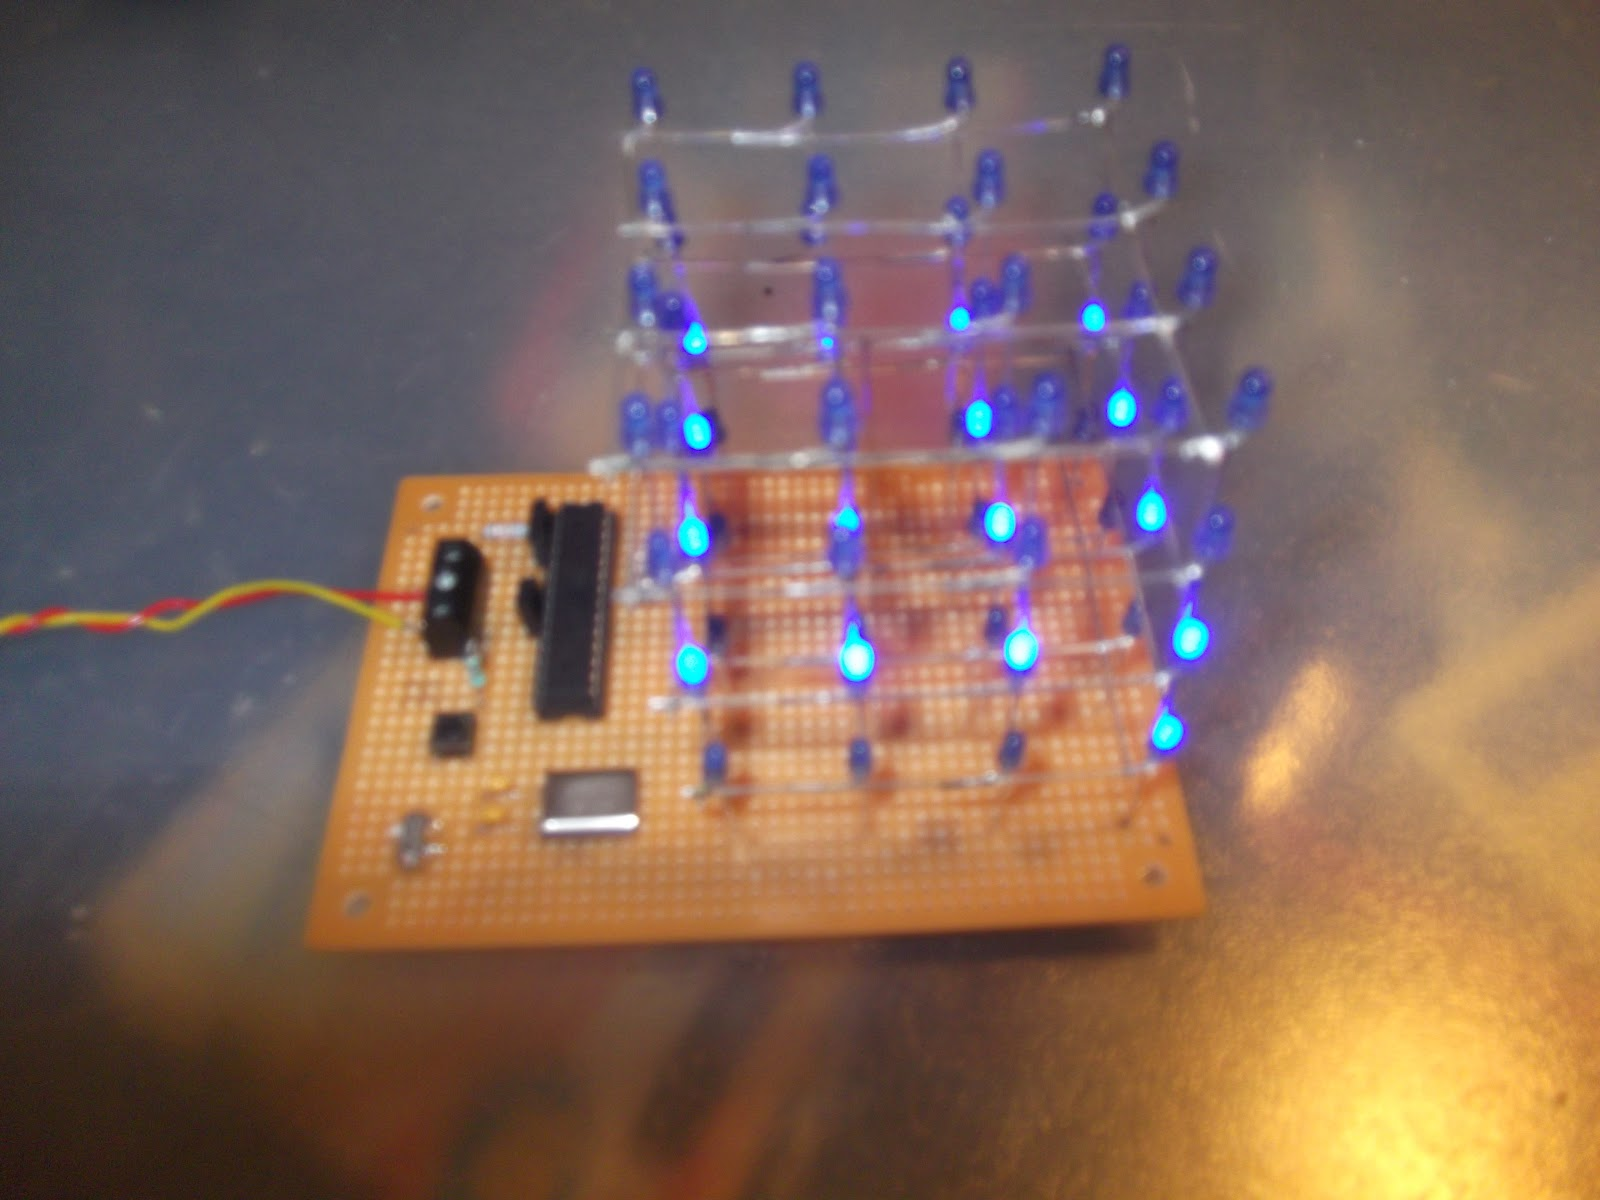 4x4x4 led cube for arduino